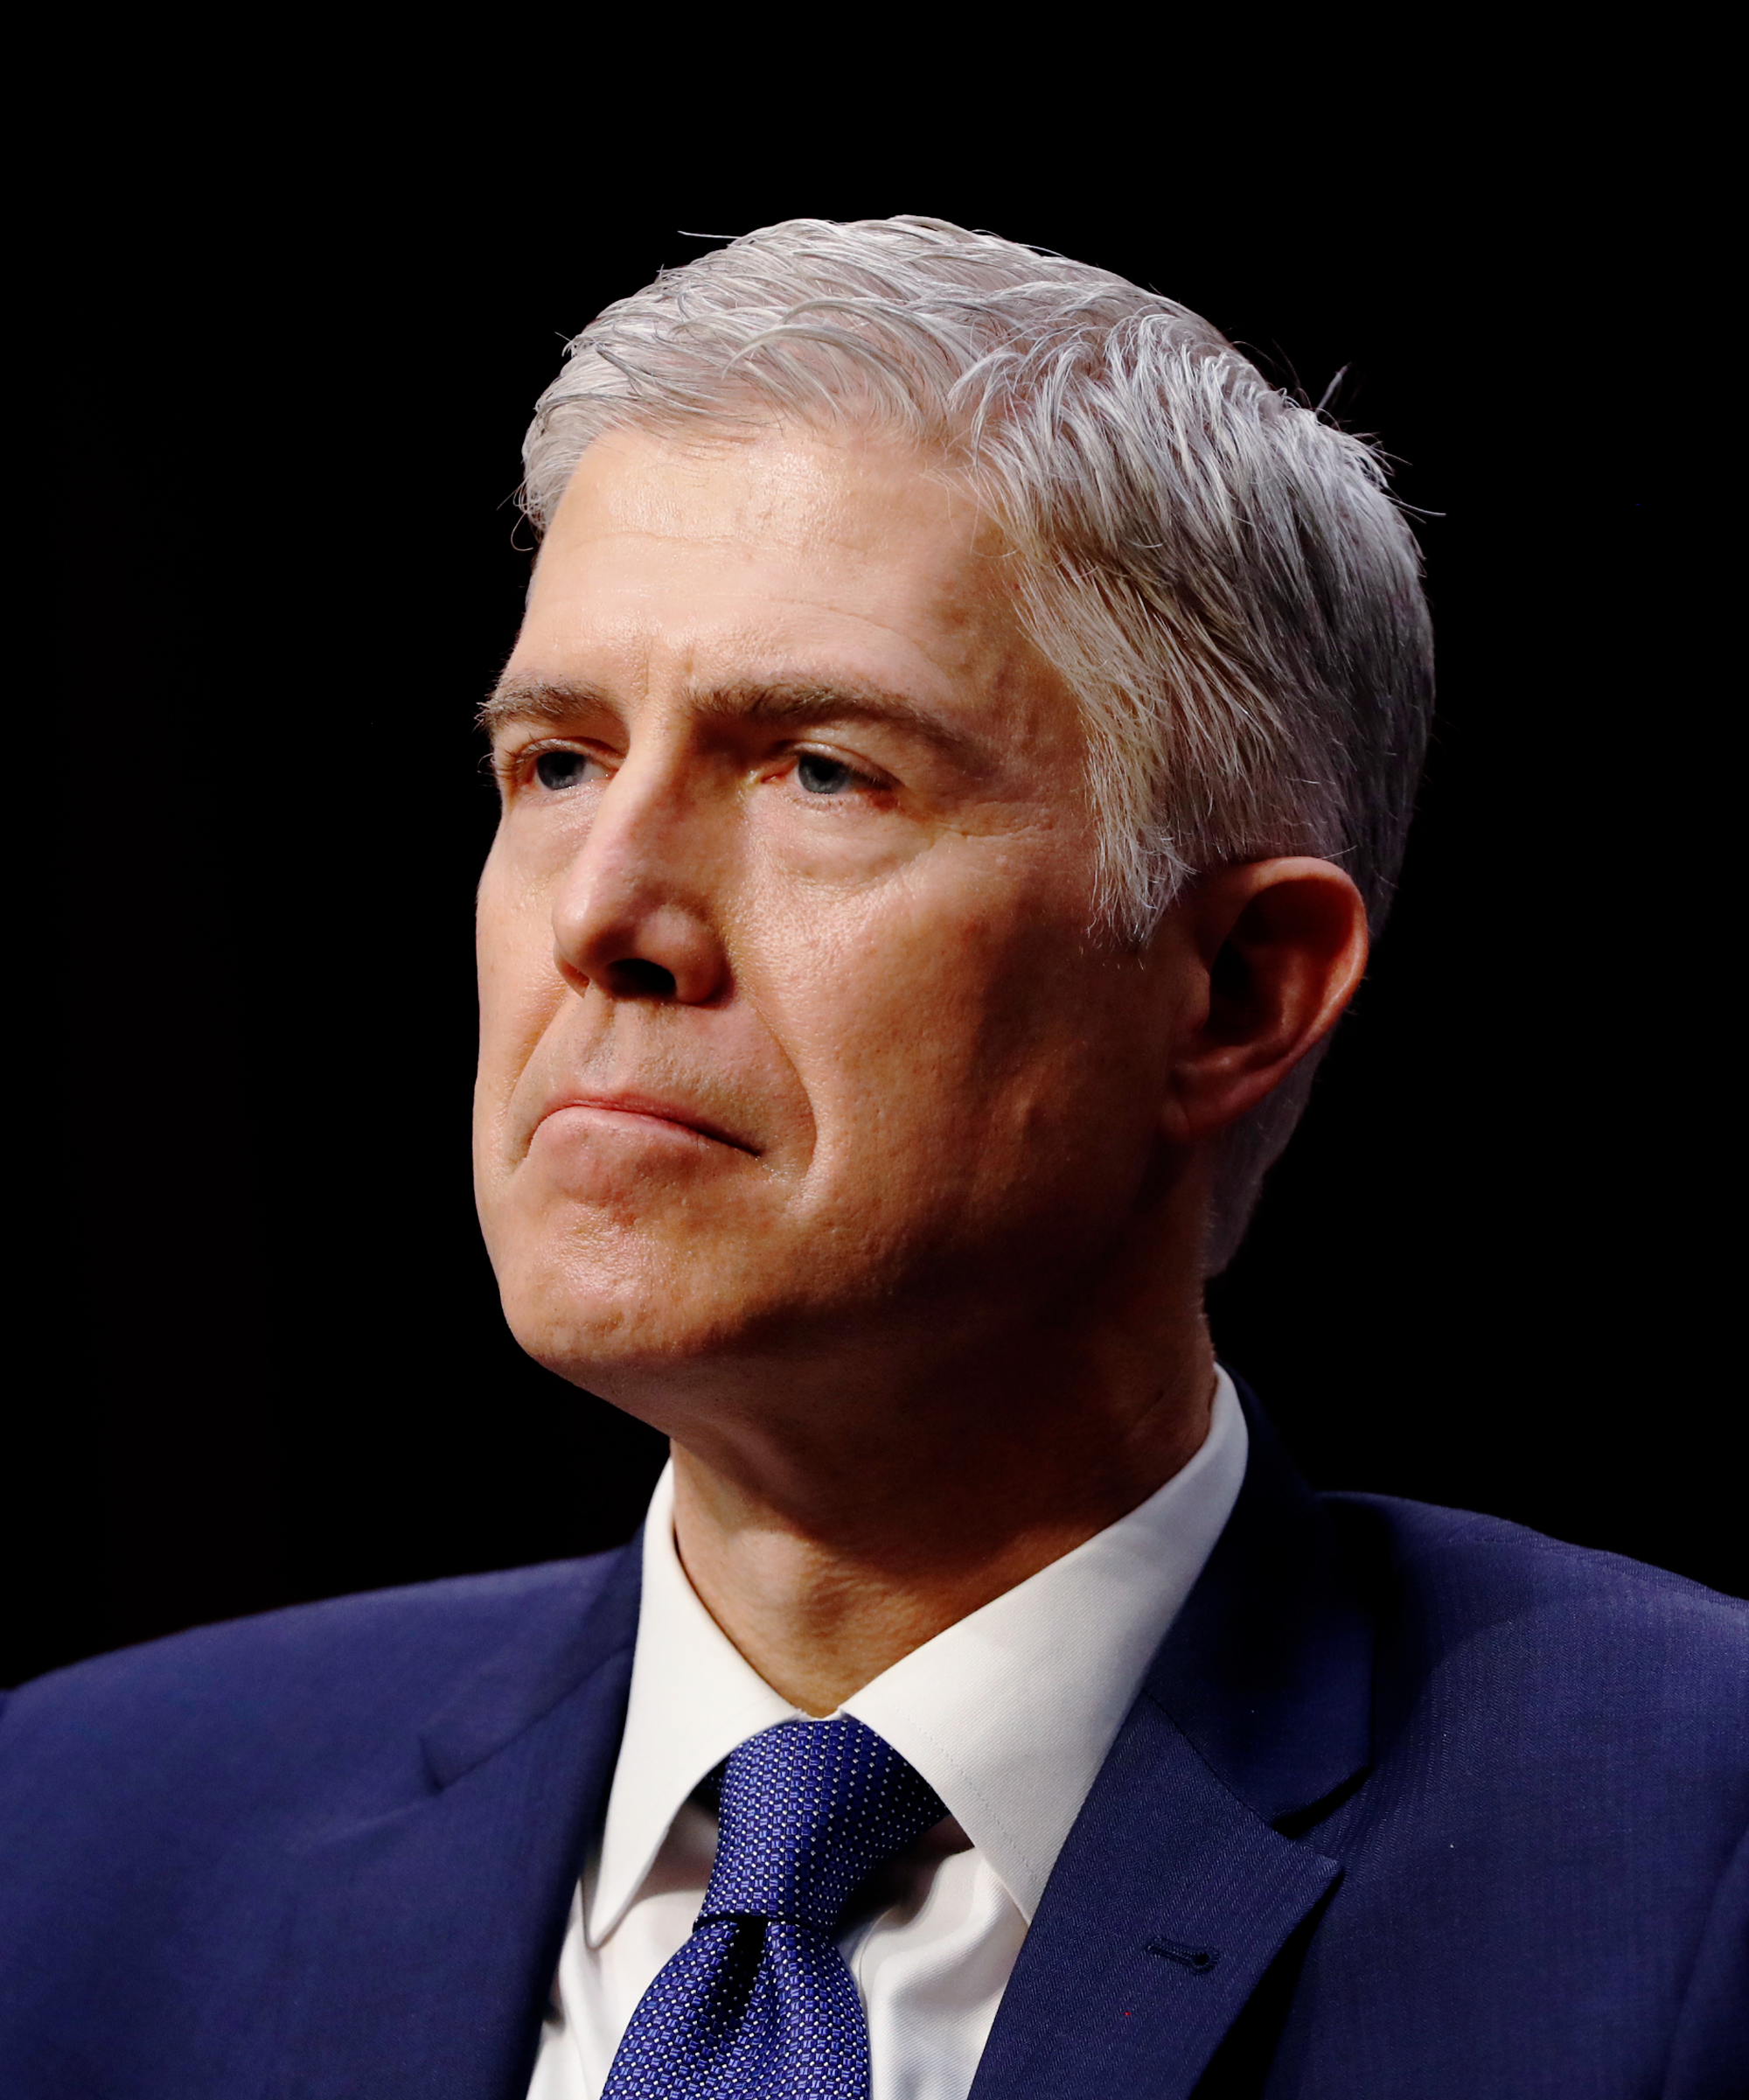 Senate Confirms Neil Gorsuch To Serve On Supreme Court